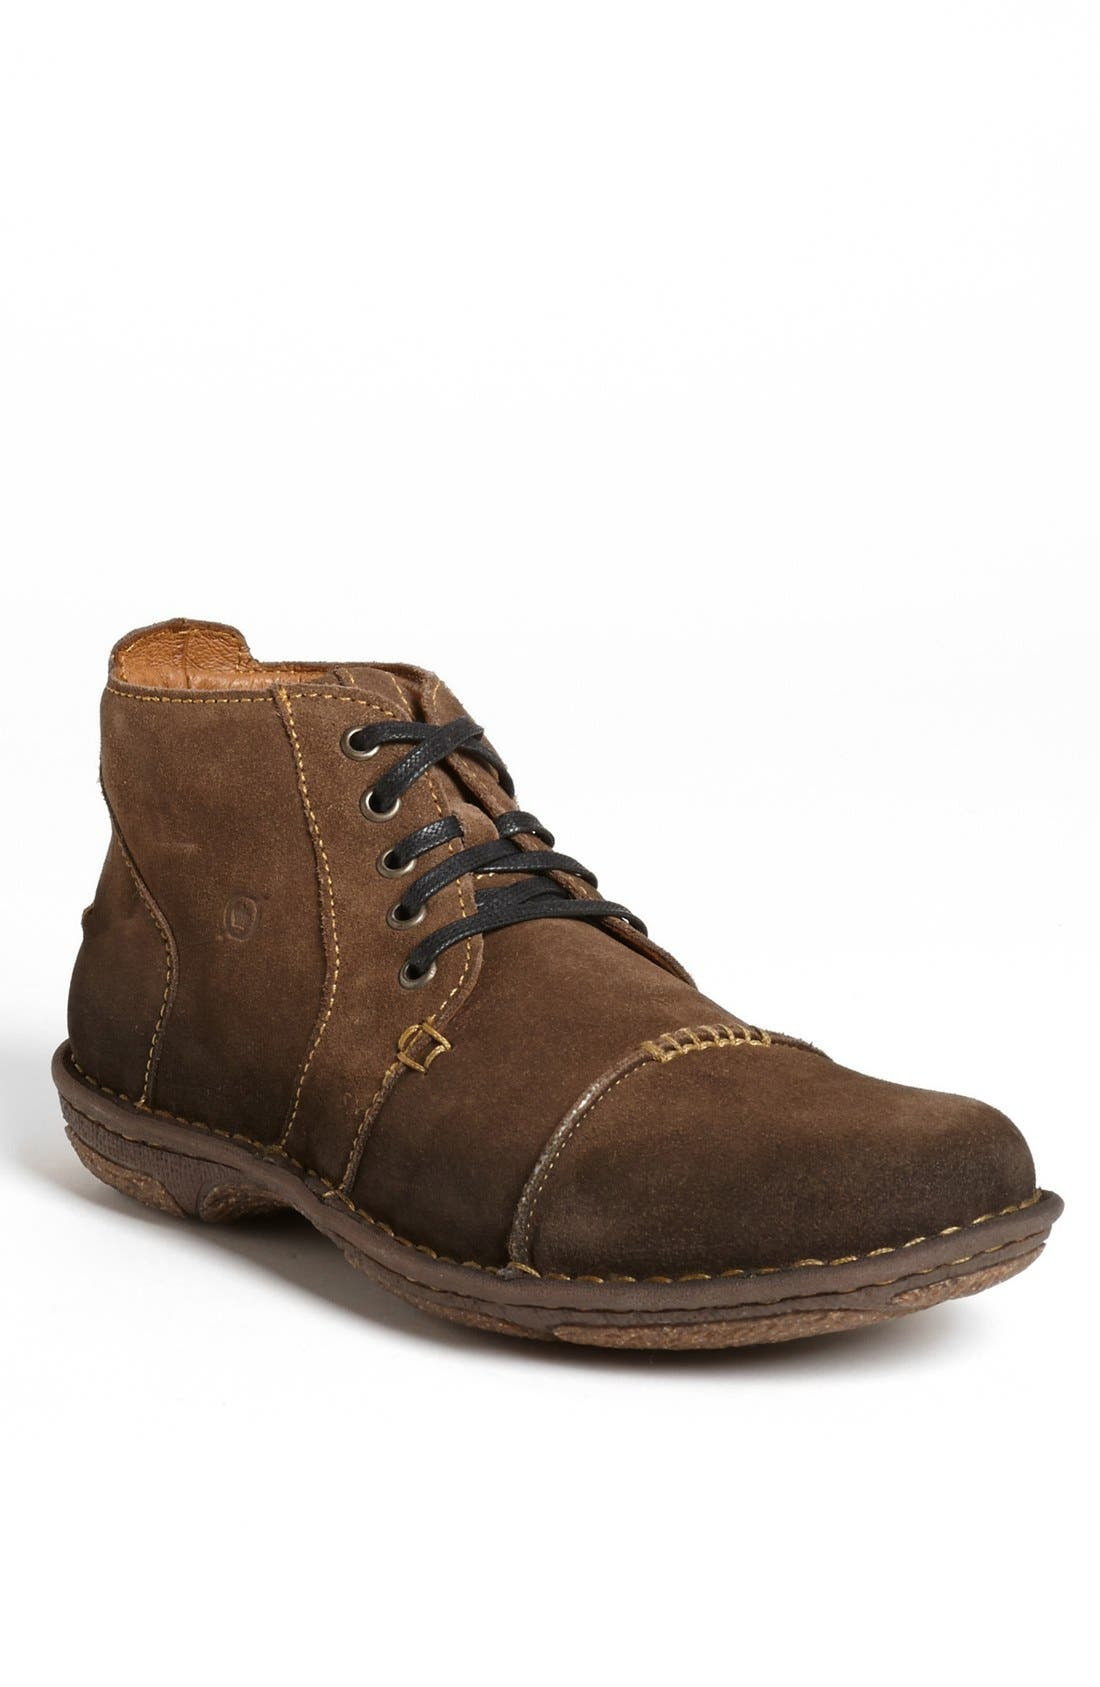 Alternate Image 1 Selected - Børn 'Edlan' Cap Toe Chukka Boot (Men)